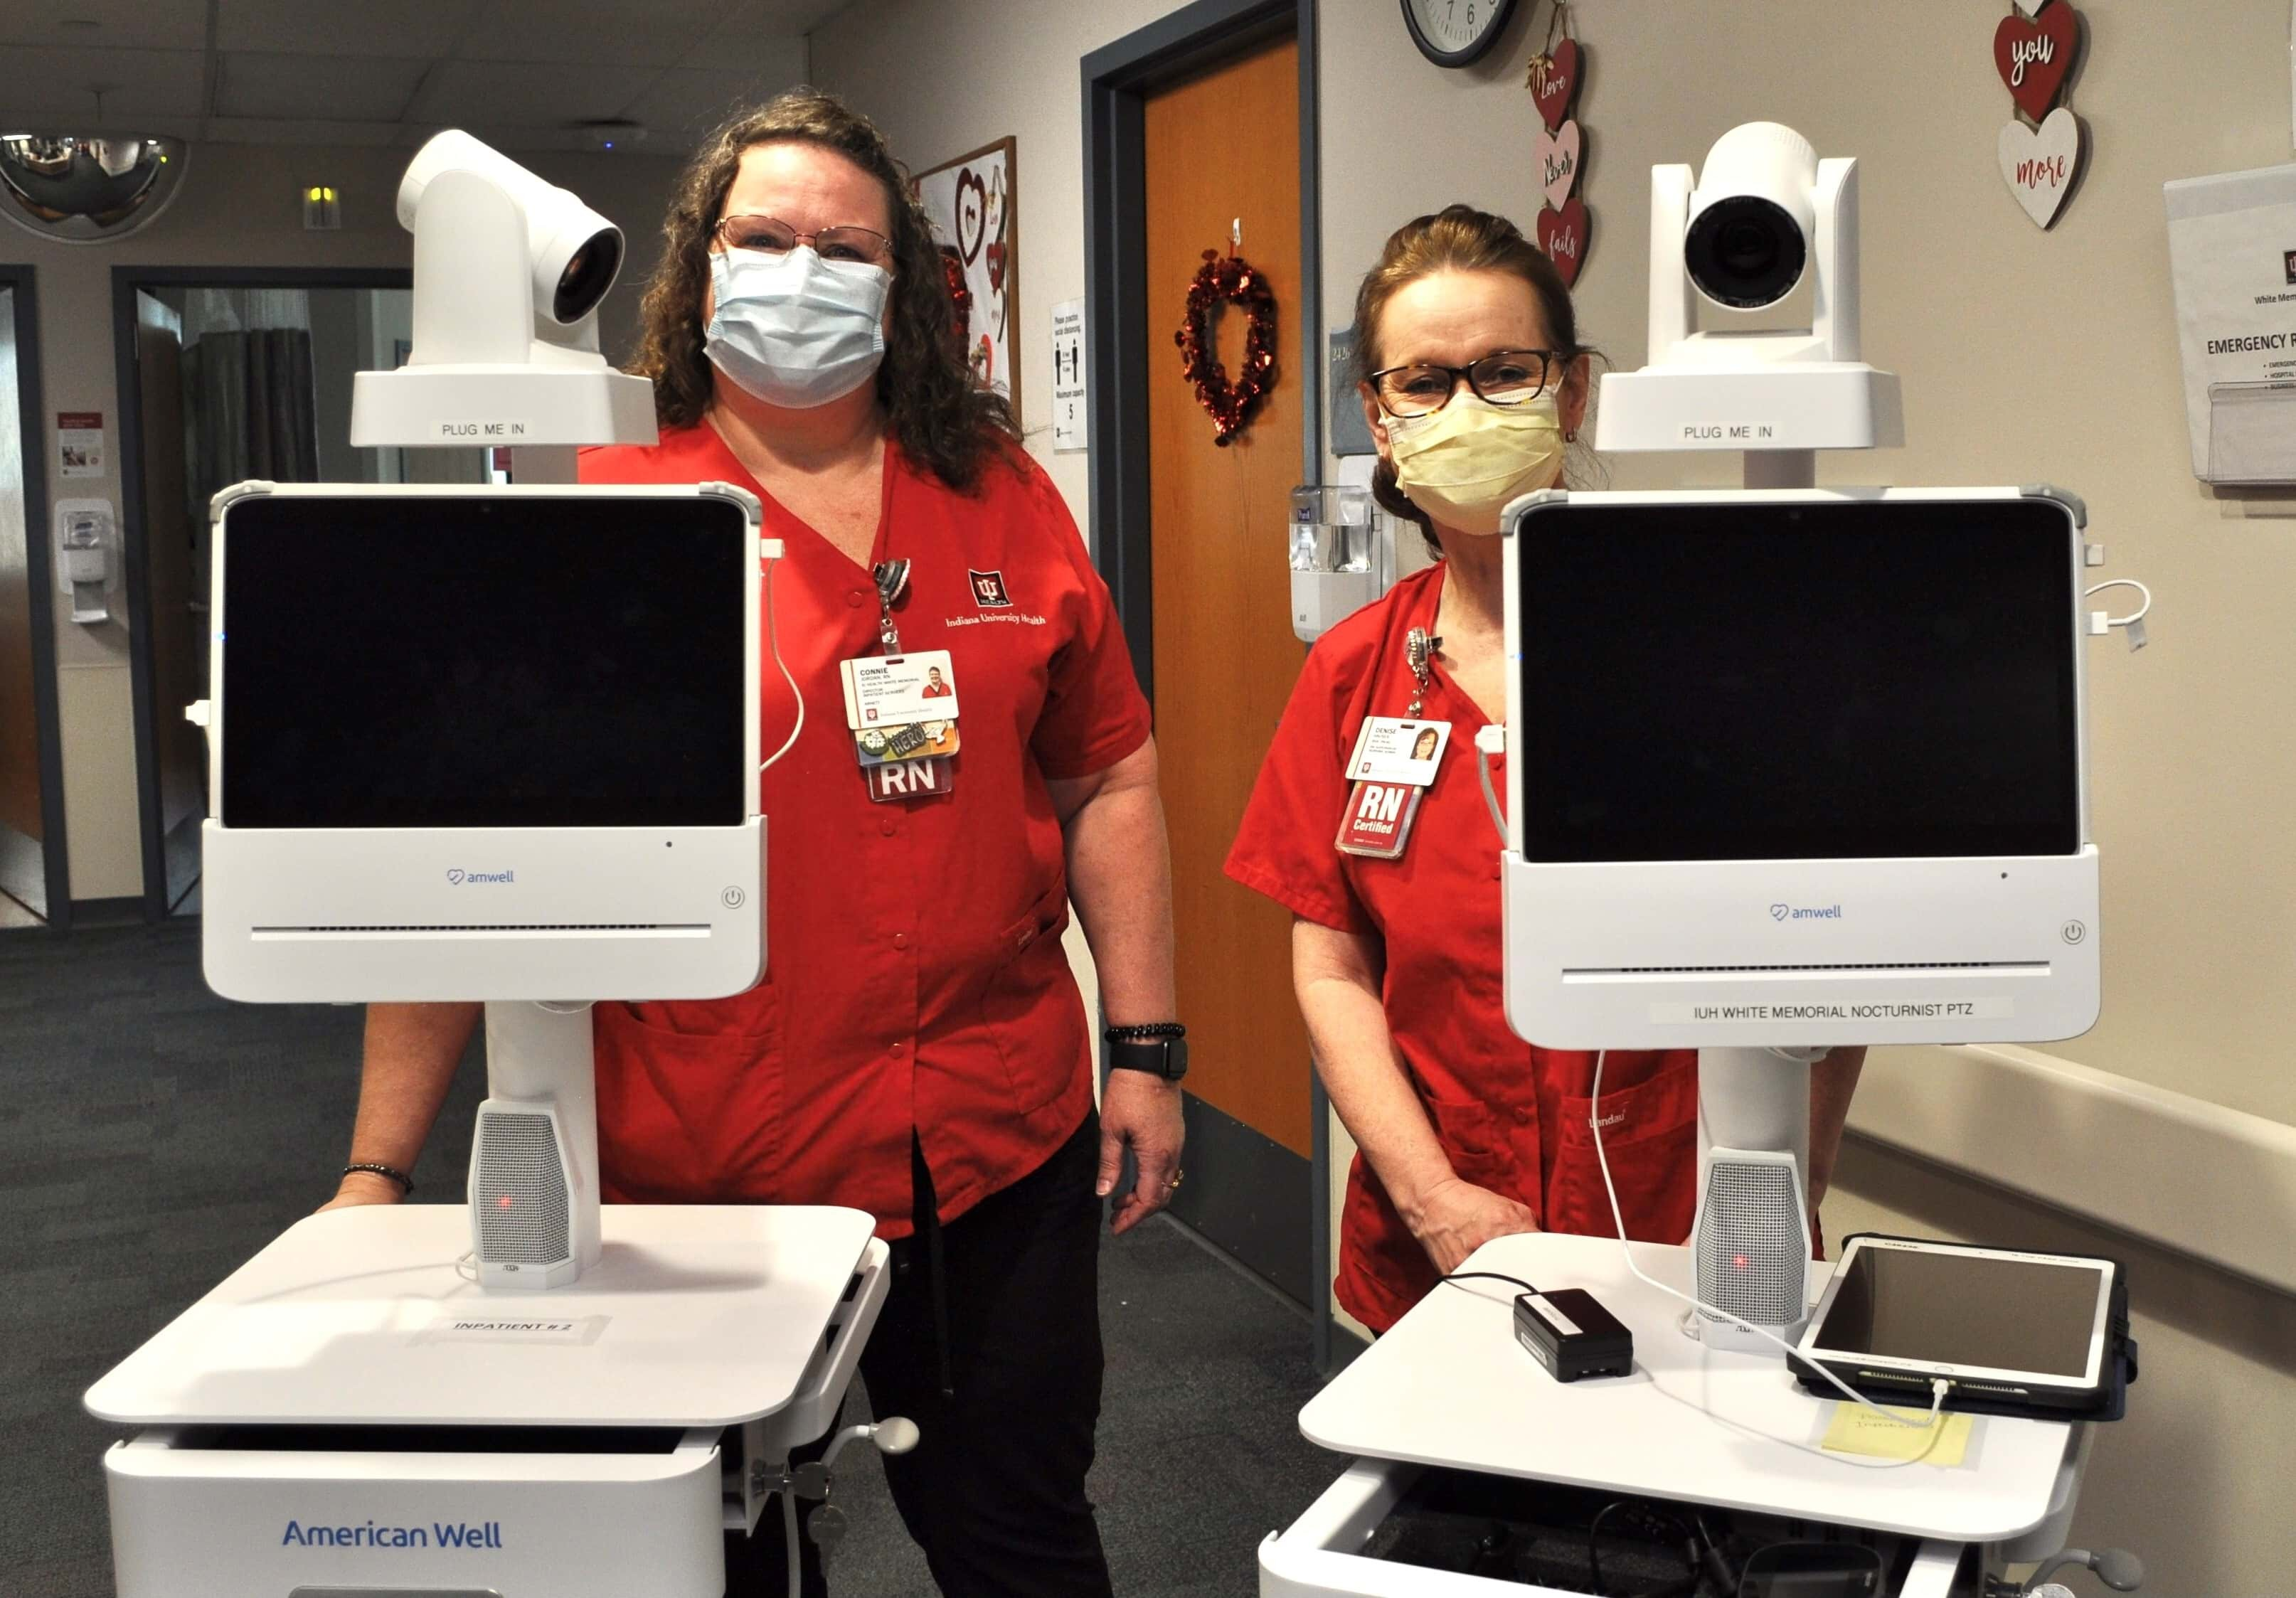 Telehealth healthcare workers showcasing new telecommunications technologies